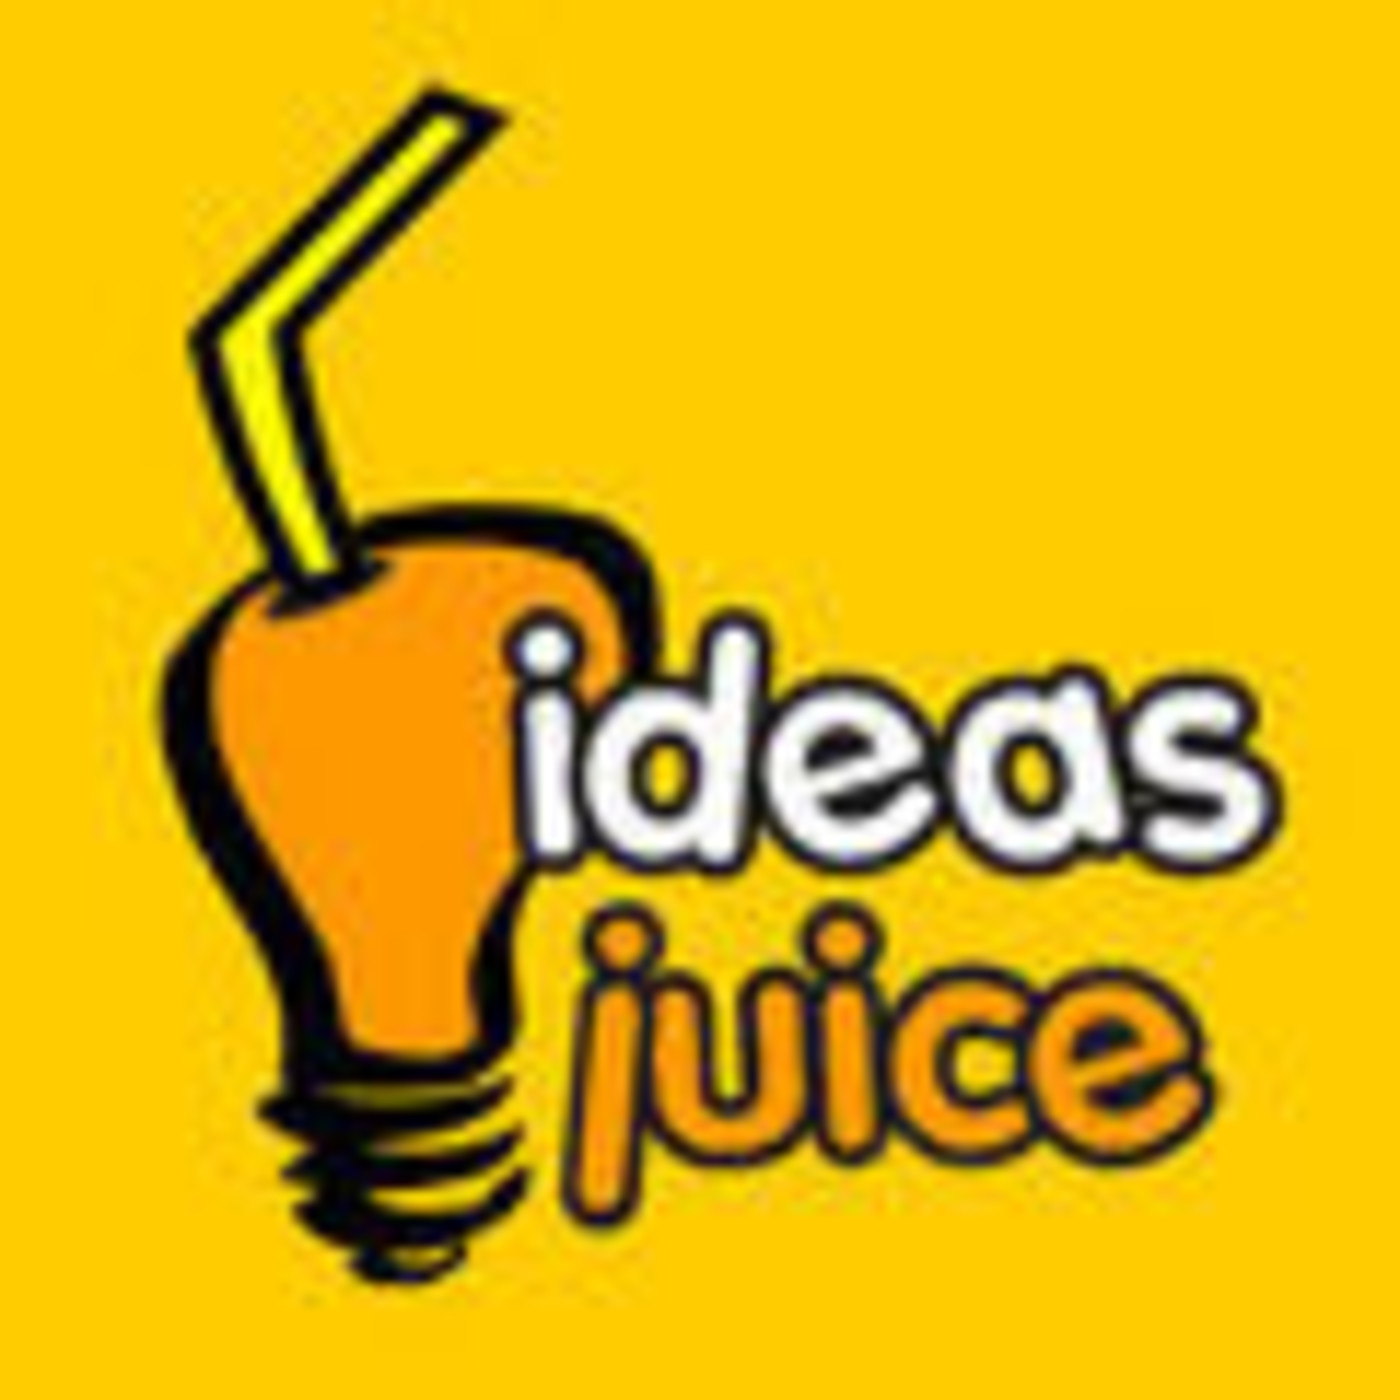 Ideas Juice